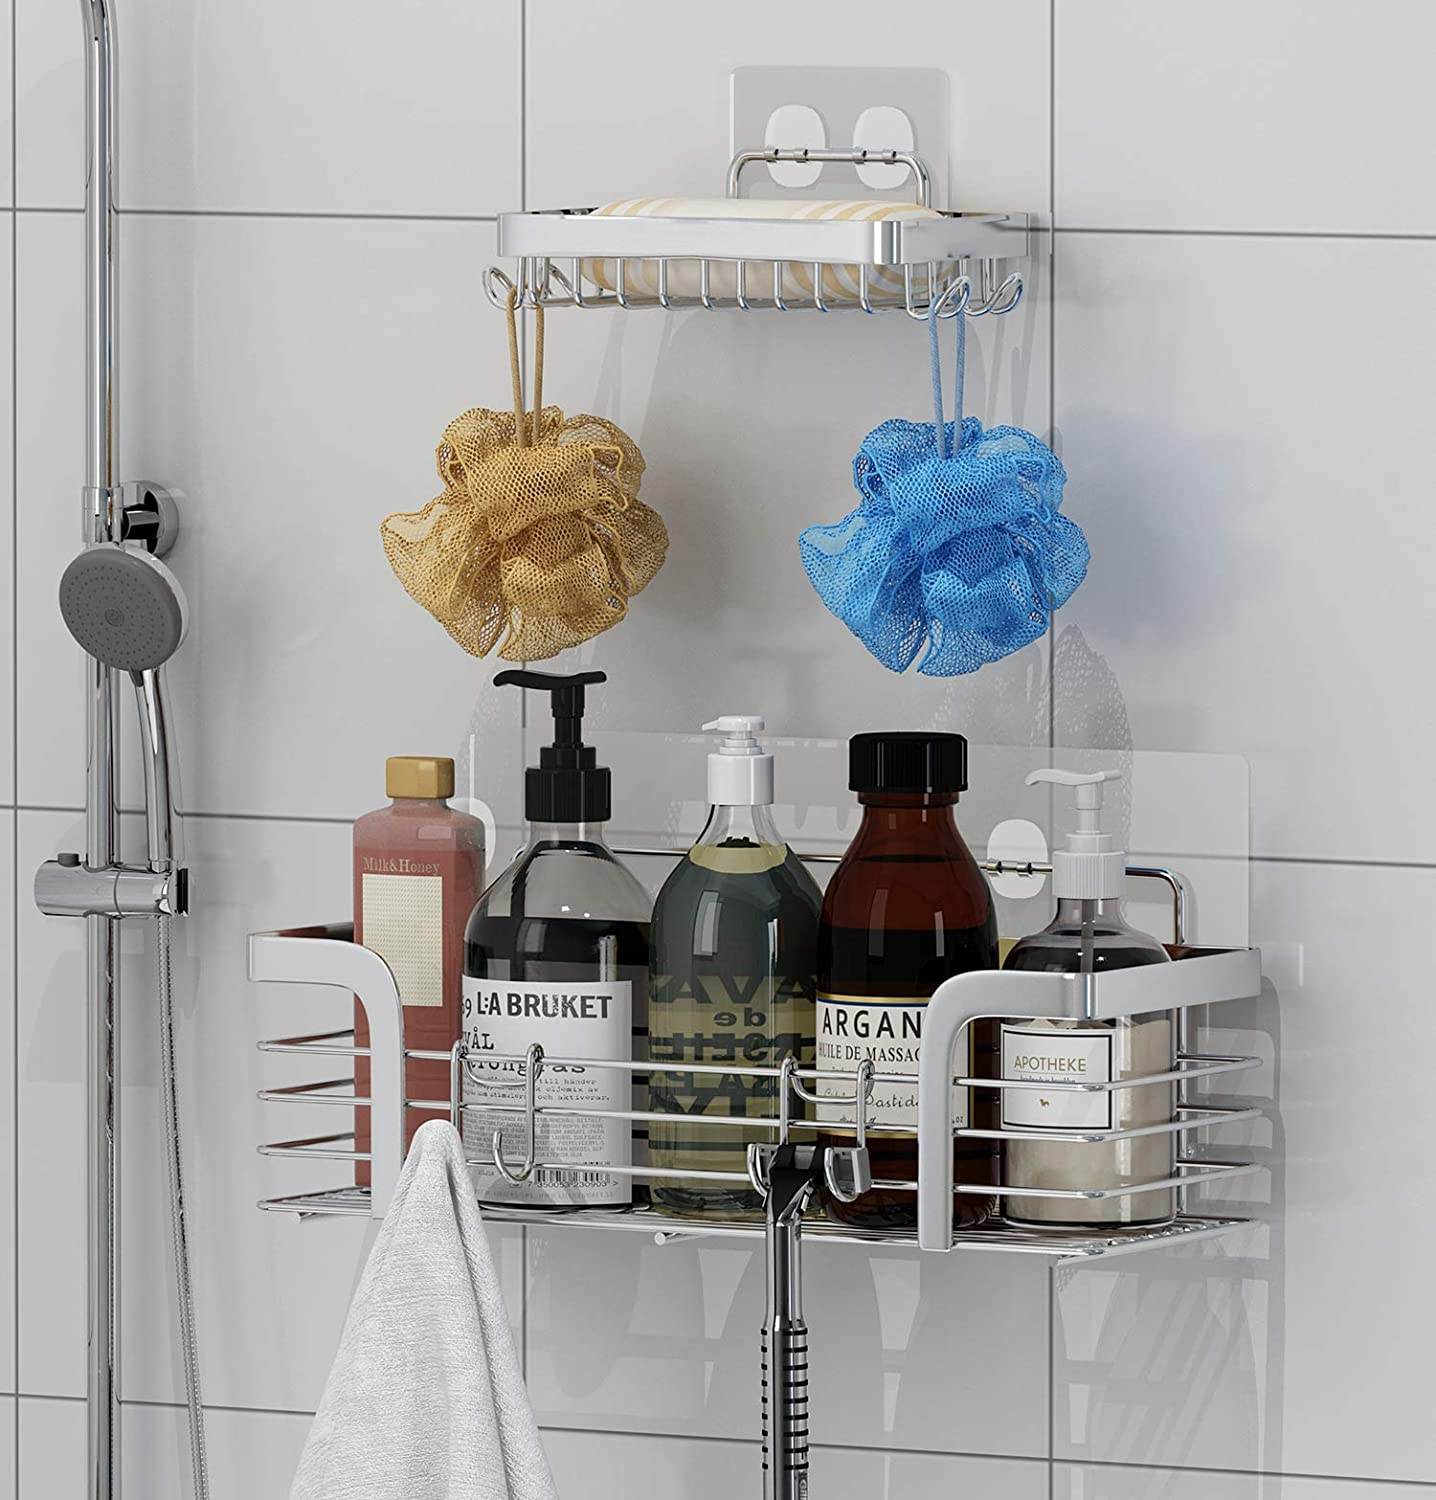 Shower Caddy and Soap Dish with Hooks Shower Shelf Bathroom Organizer, No Drilling Adhesive Wall Mounted Bathroom Shelf, Rustproof SUS304 Stainless Steel ( 2 Pack )